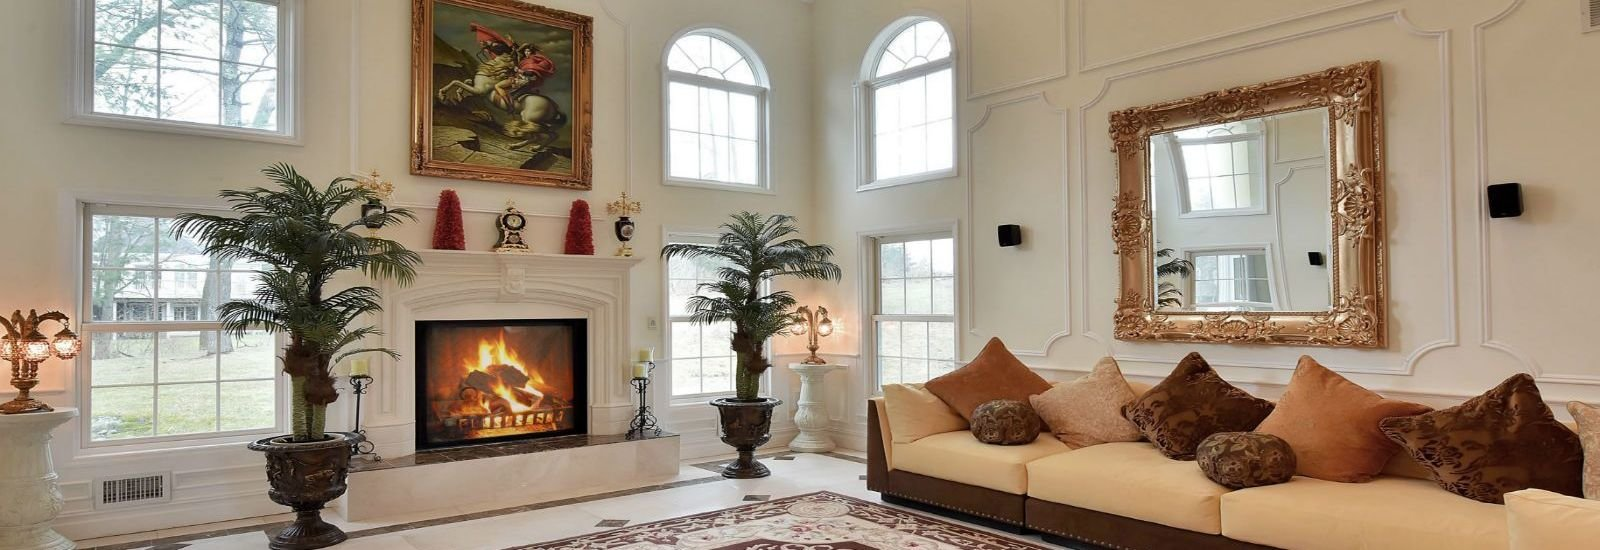 Best 6 Homes With Spectacular Bespoke Fireplaces Christie's With Pictures